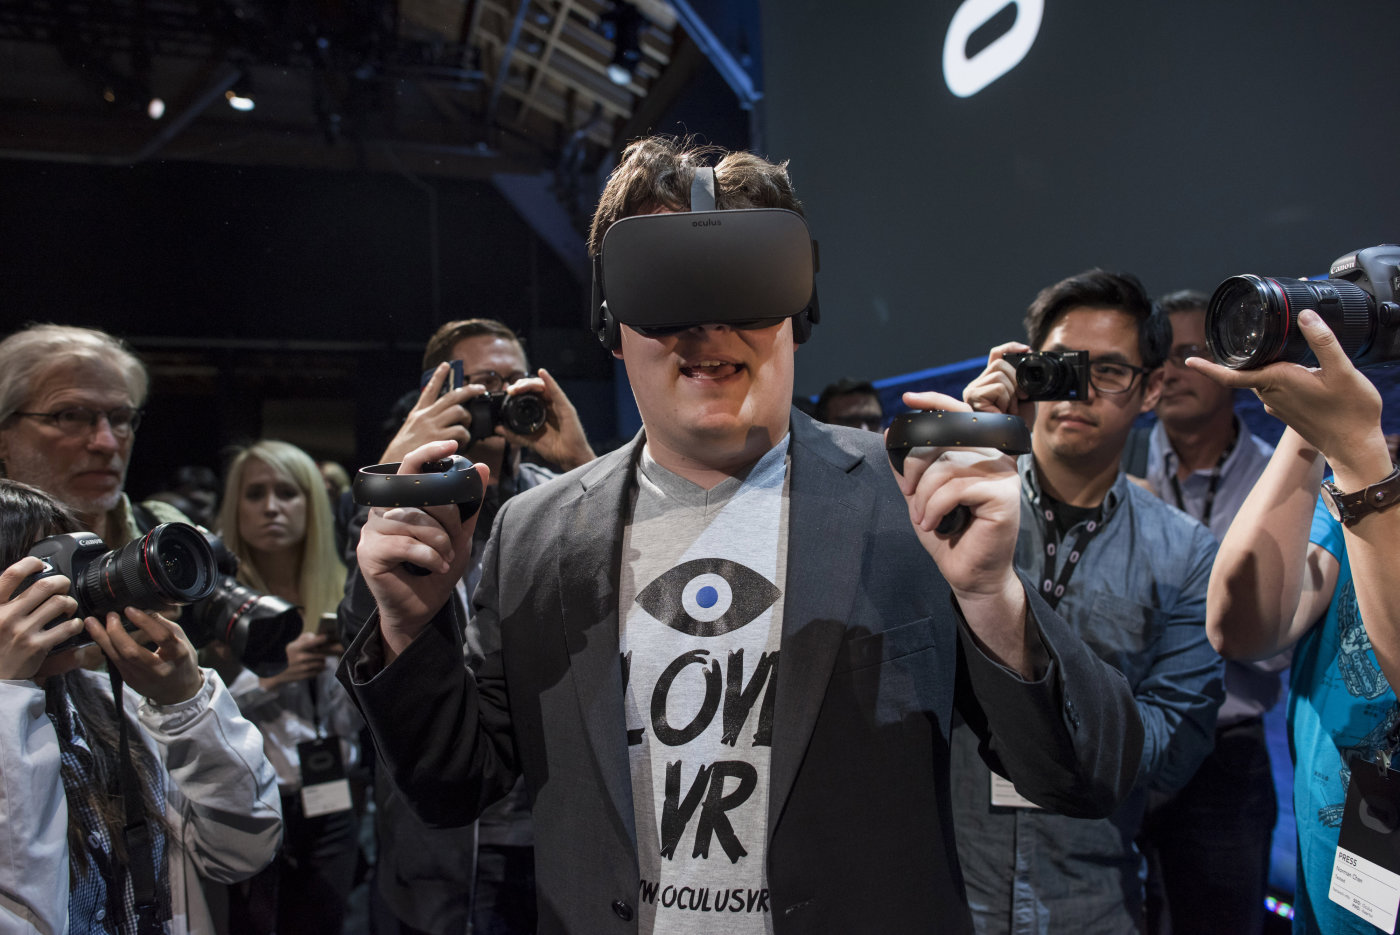 Oculus Rift pre-orders open this week but there's still no price